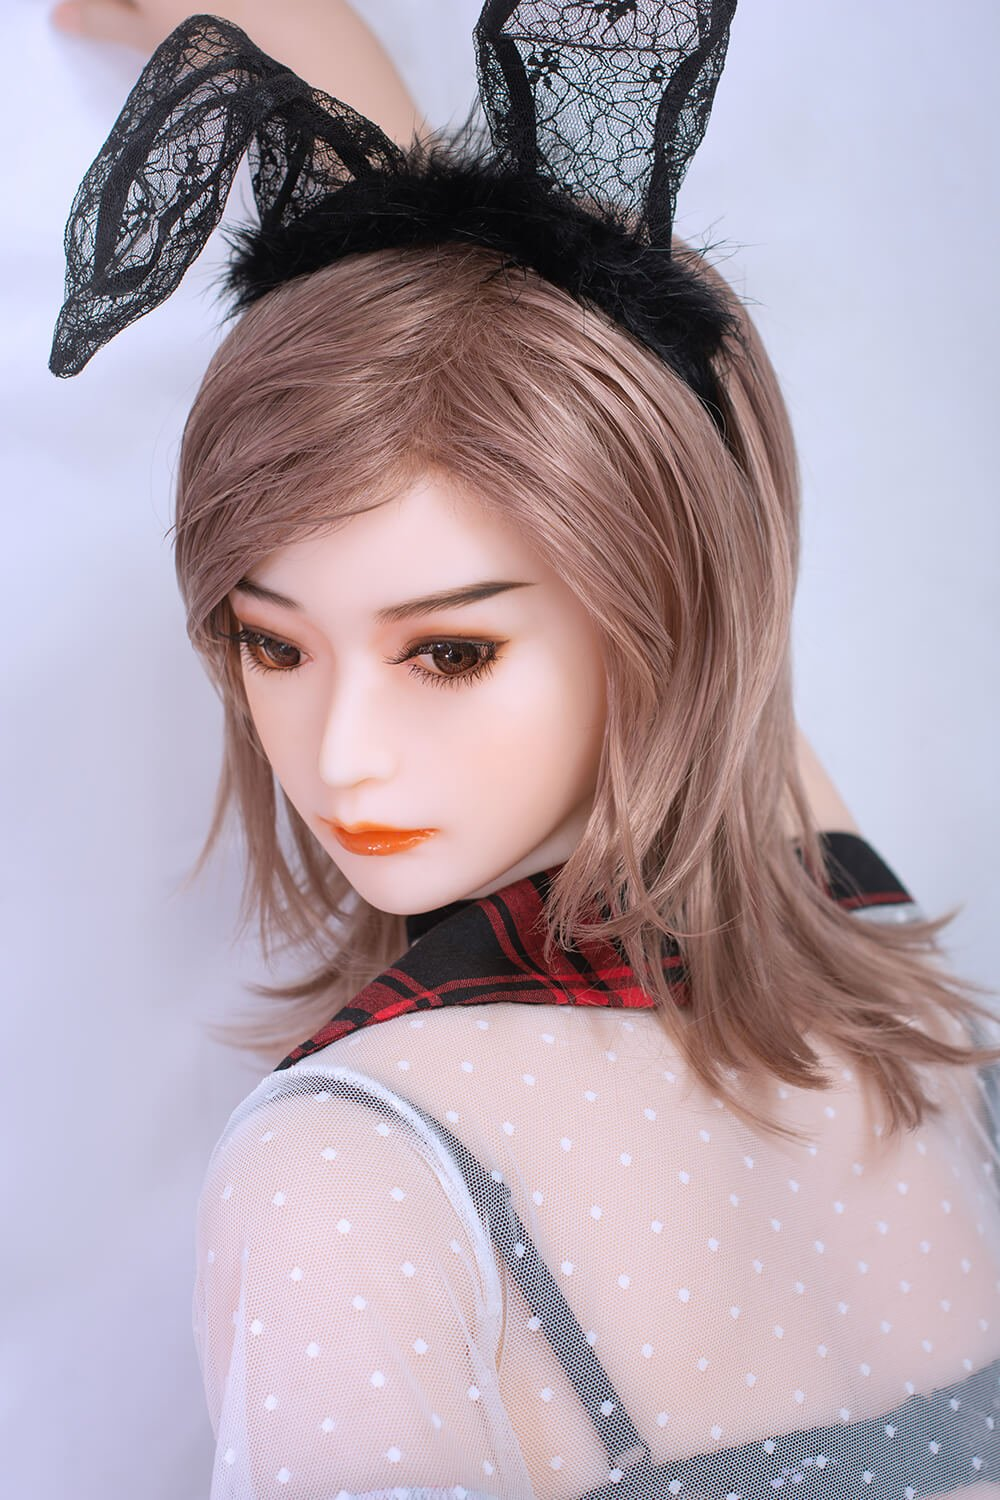 168CM Anime Bunny Girl Sex Doll - Olivia